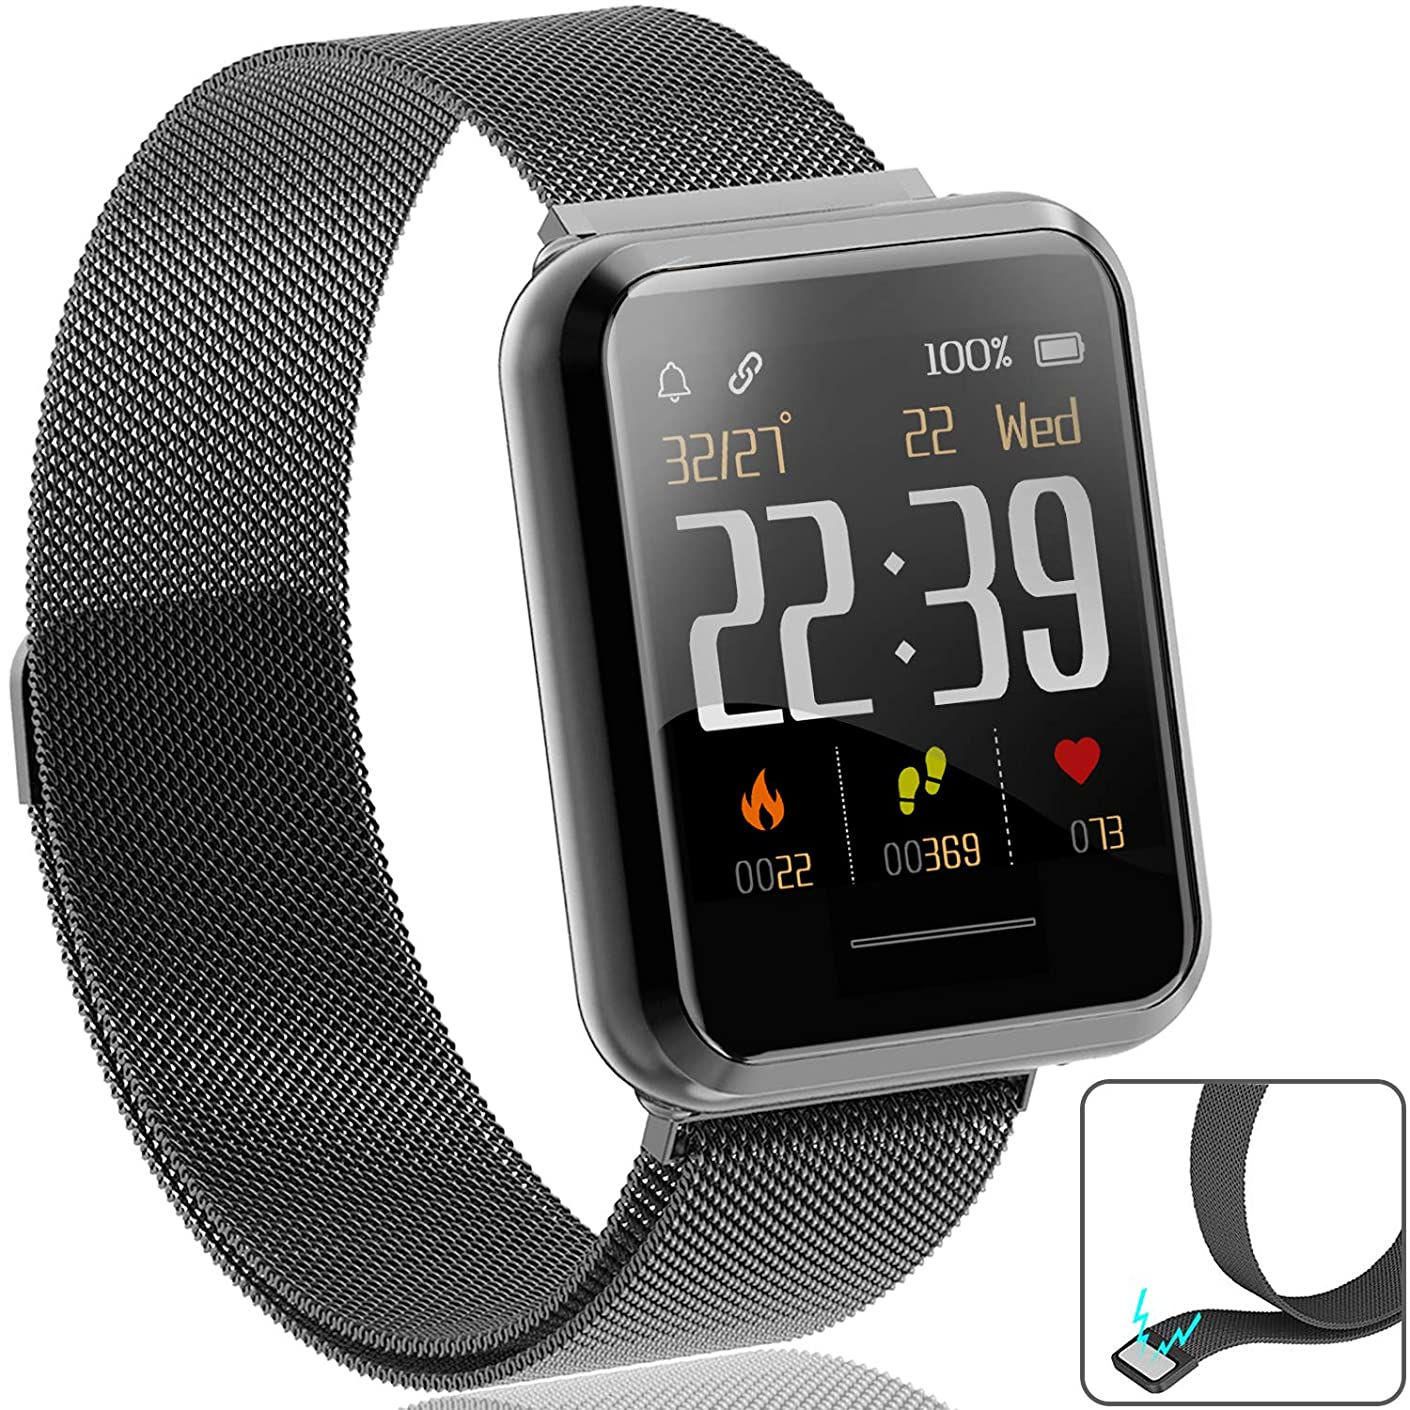 [TR-LCD Screen] Fitness Tracker Smart Watch for Men Women, Waterproof Sport Wrist Watch with Heart Rate Blood Pressure Monitor Calorie Pedometer SMS Reminder (24h Constant Display)